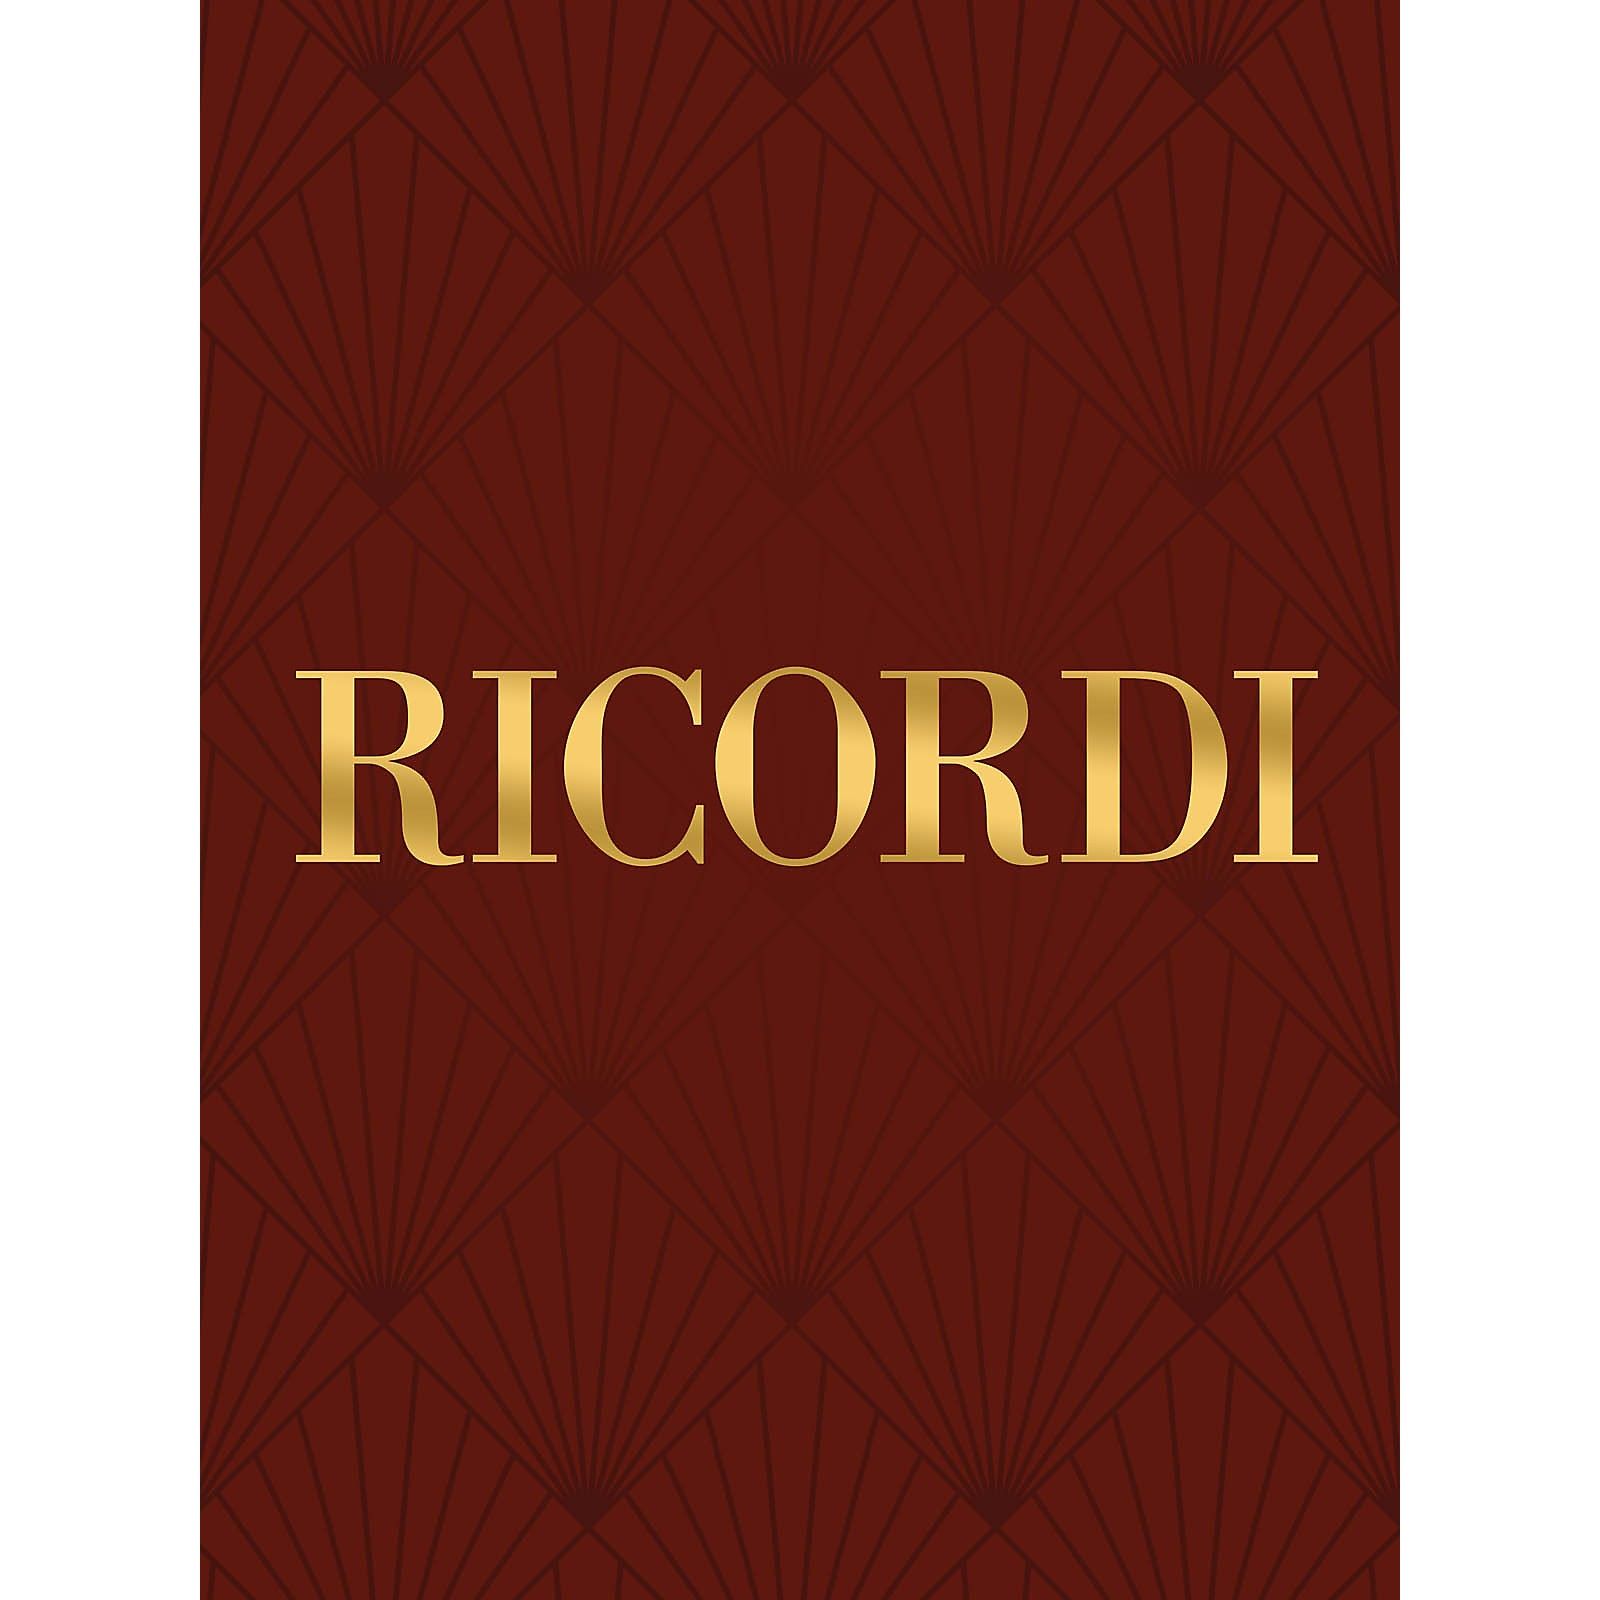 Ricordi Conc in A Min for Oboe Strings and Basso Cont RV461 Woodwind Solo by Vivaldi Edited by Vilmos Lesko